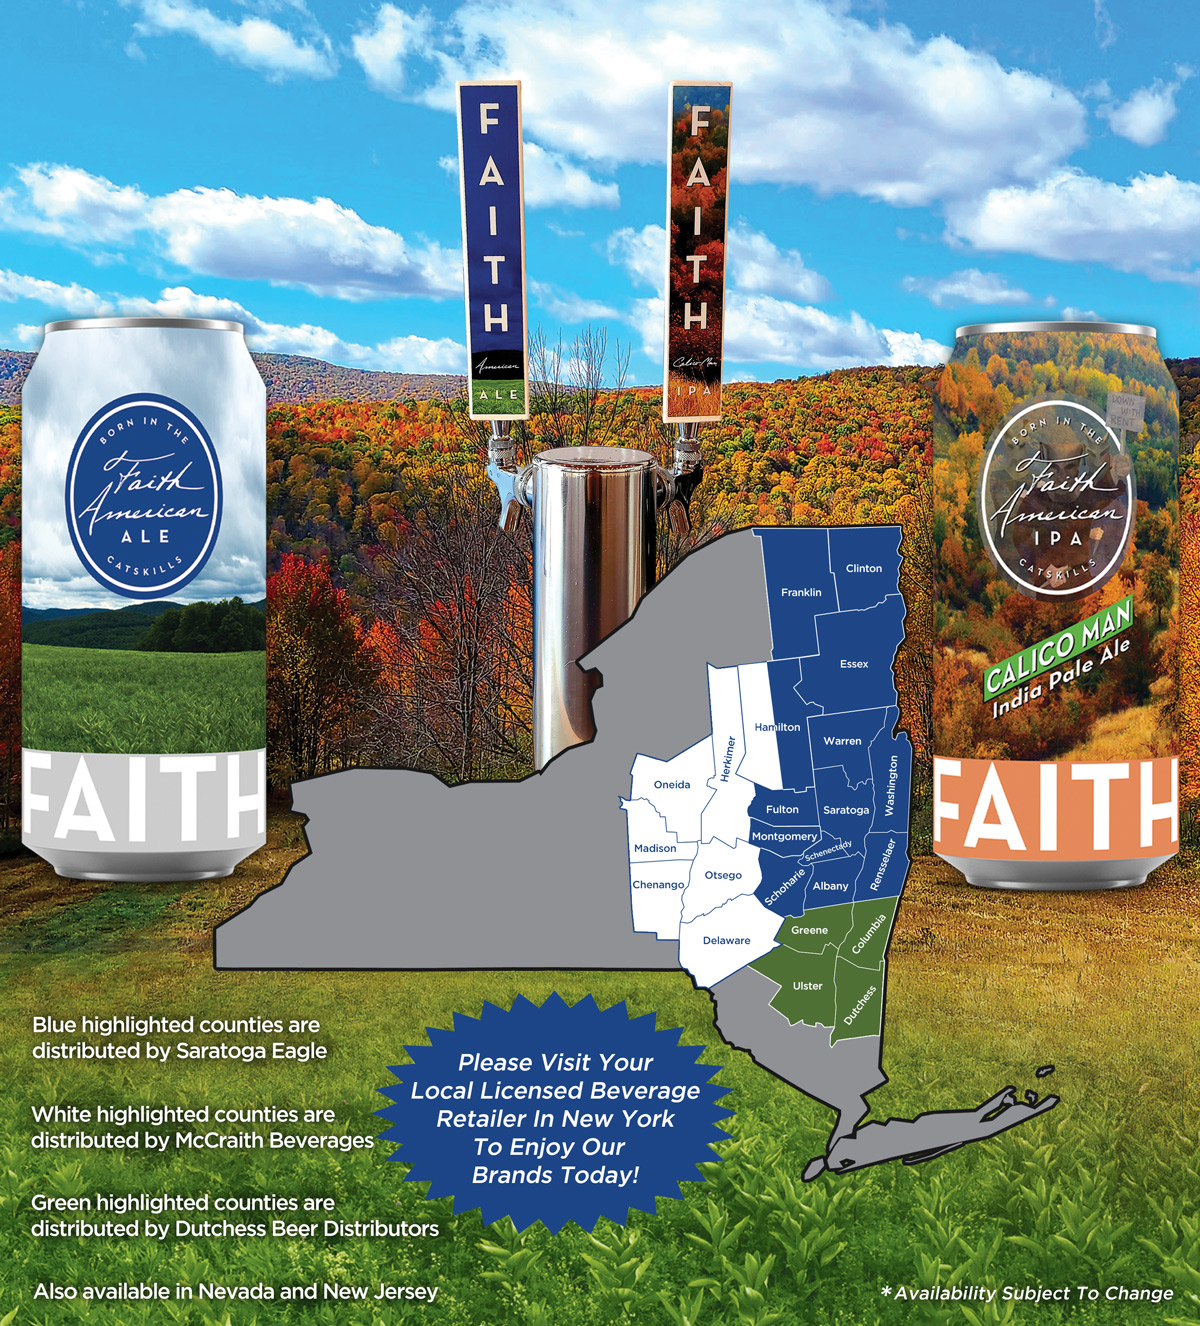 New York counties where Faith American Ale is offered